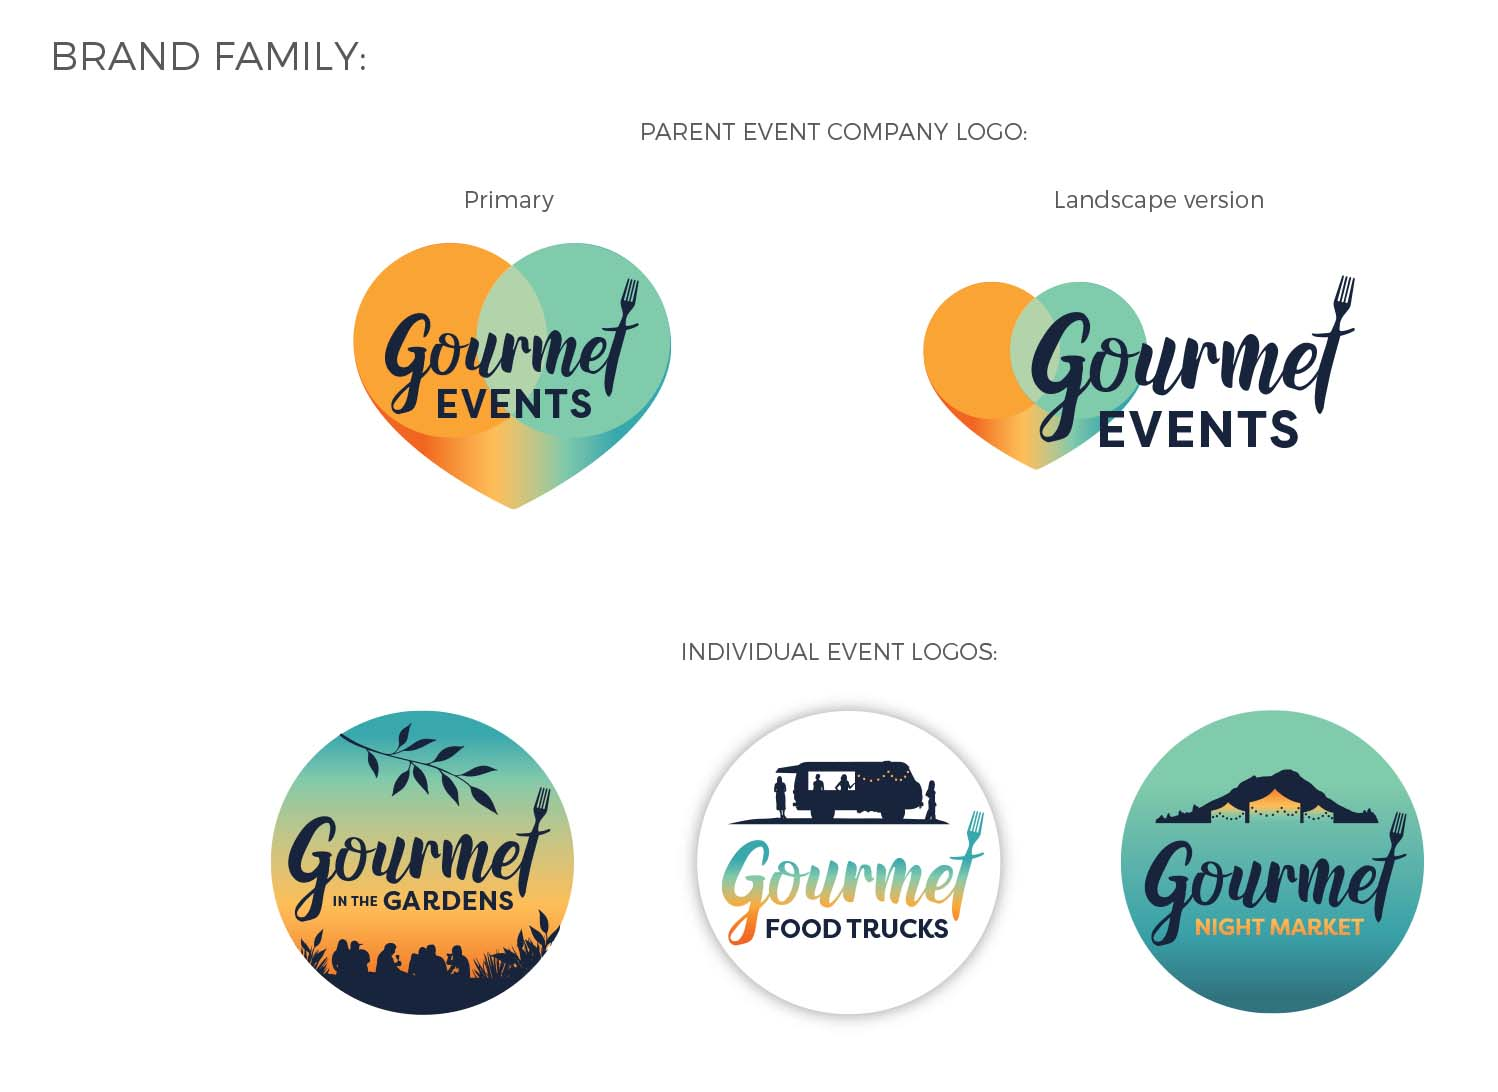 Gourmet Events family branding